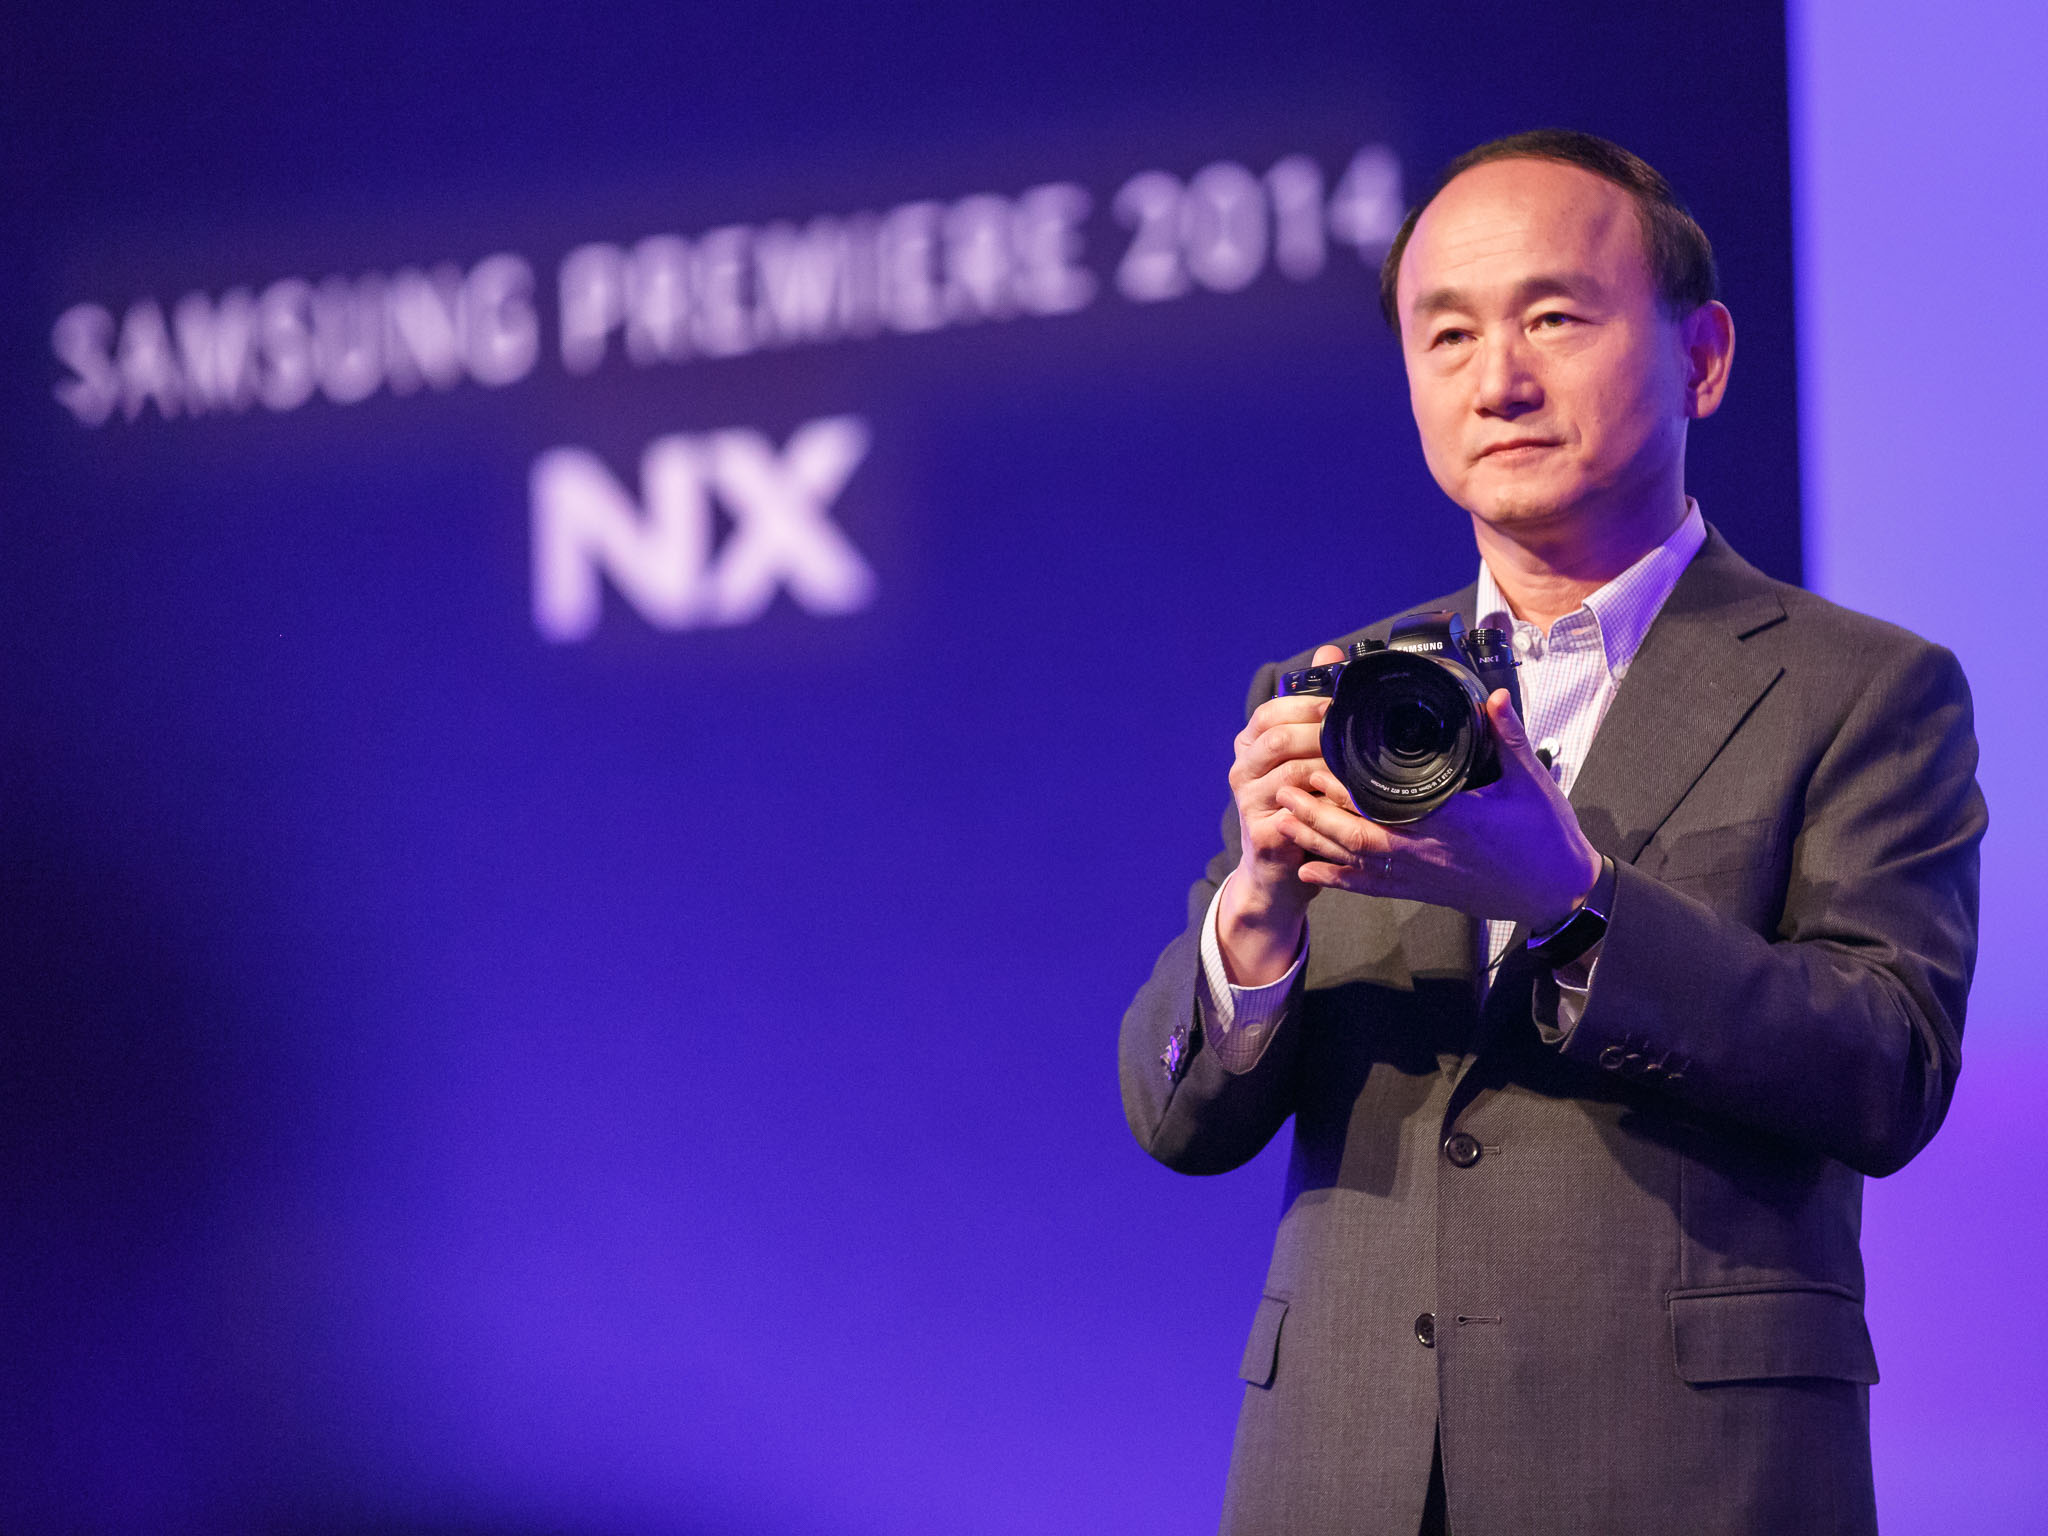 Myoungsup Han, head of Samsung Electronics' imaging team, unveils the NX1 camera in 2014. The camera can shoot 4K video compressed with the HEVC/H.265 technology.